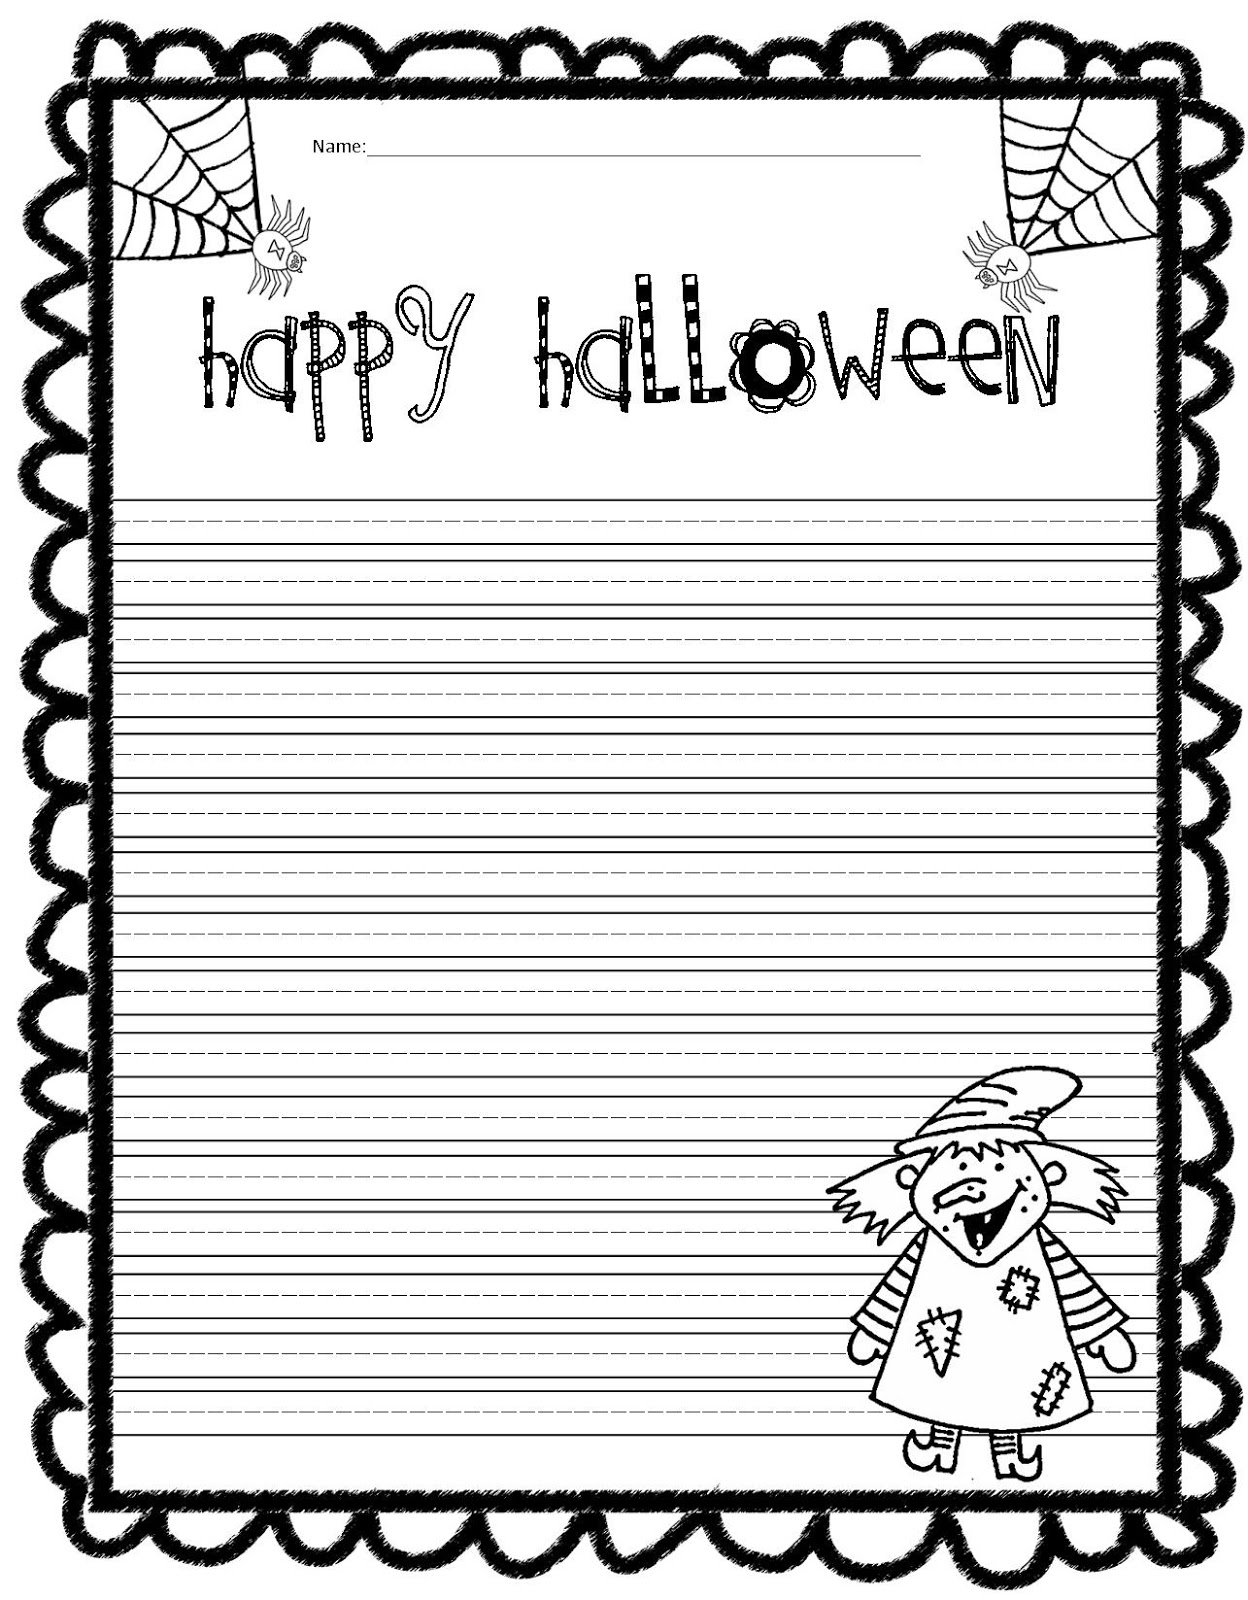 essay writing about halloween Published: mon, 5 dec 2016 the year was 2007 it was halloween that day my family and i went to oklahoma city because my mom had an old friend that she just had to go see.